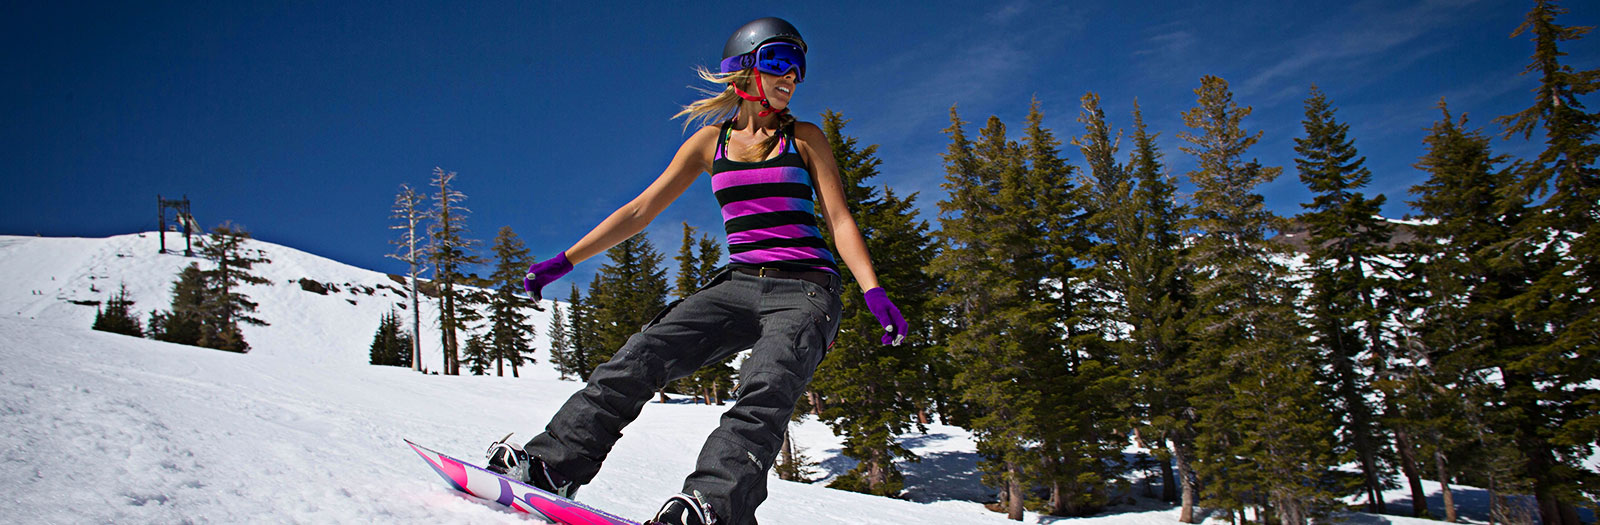 Squaw Valley Alpine meadows lodging package deals